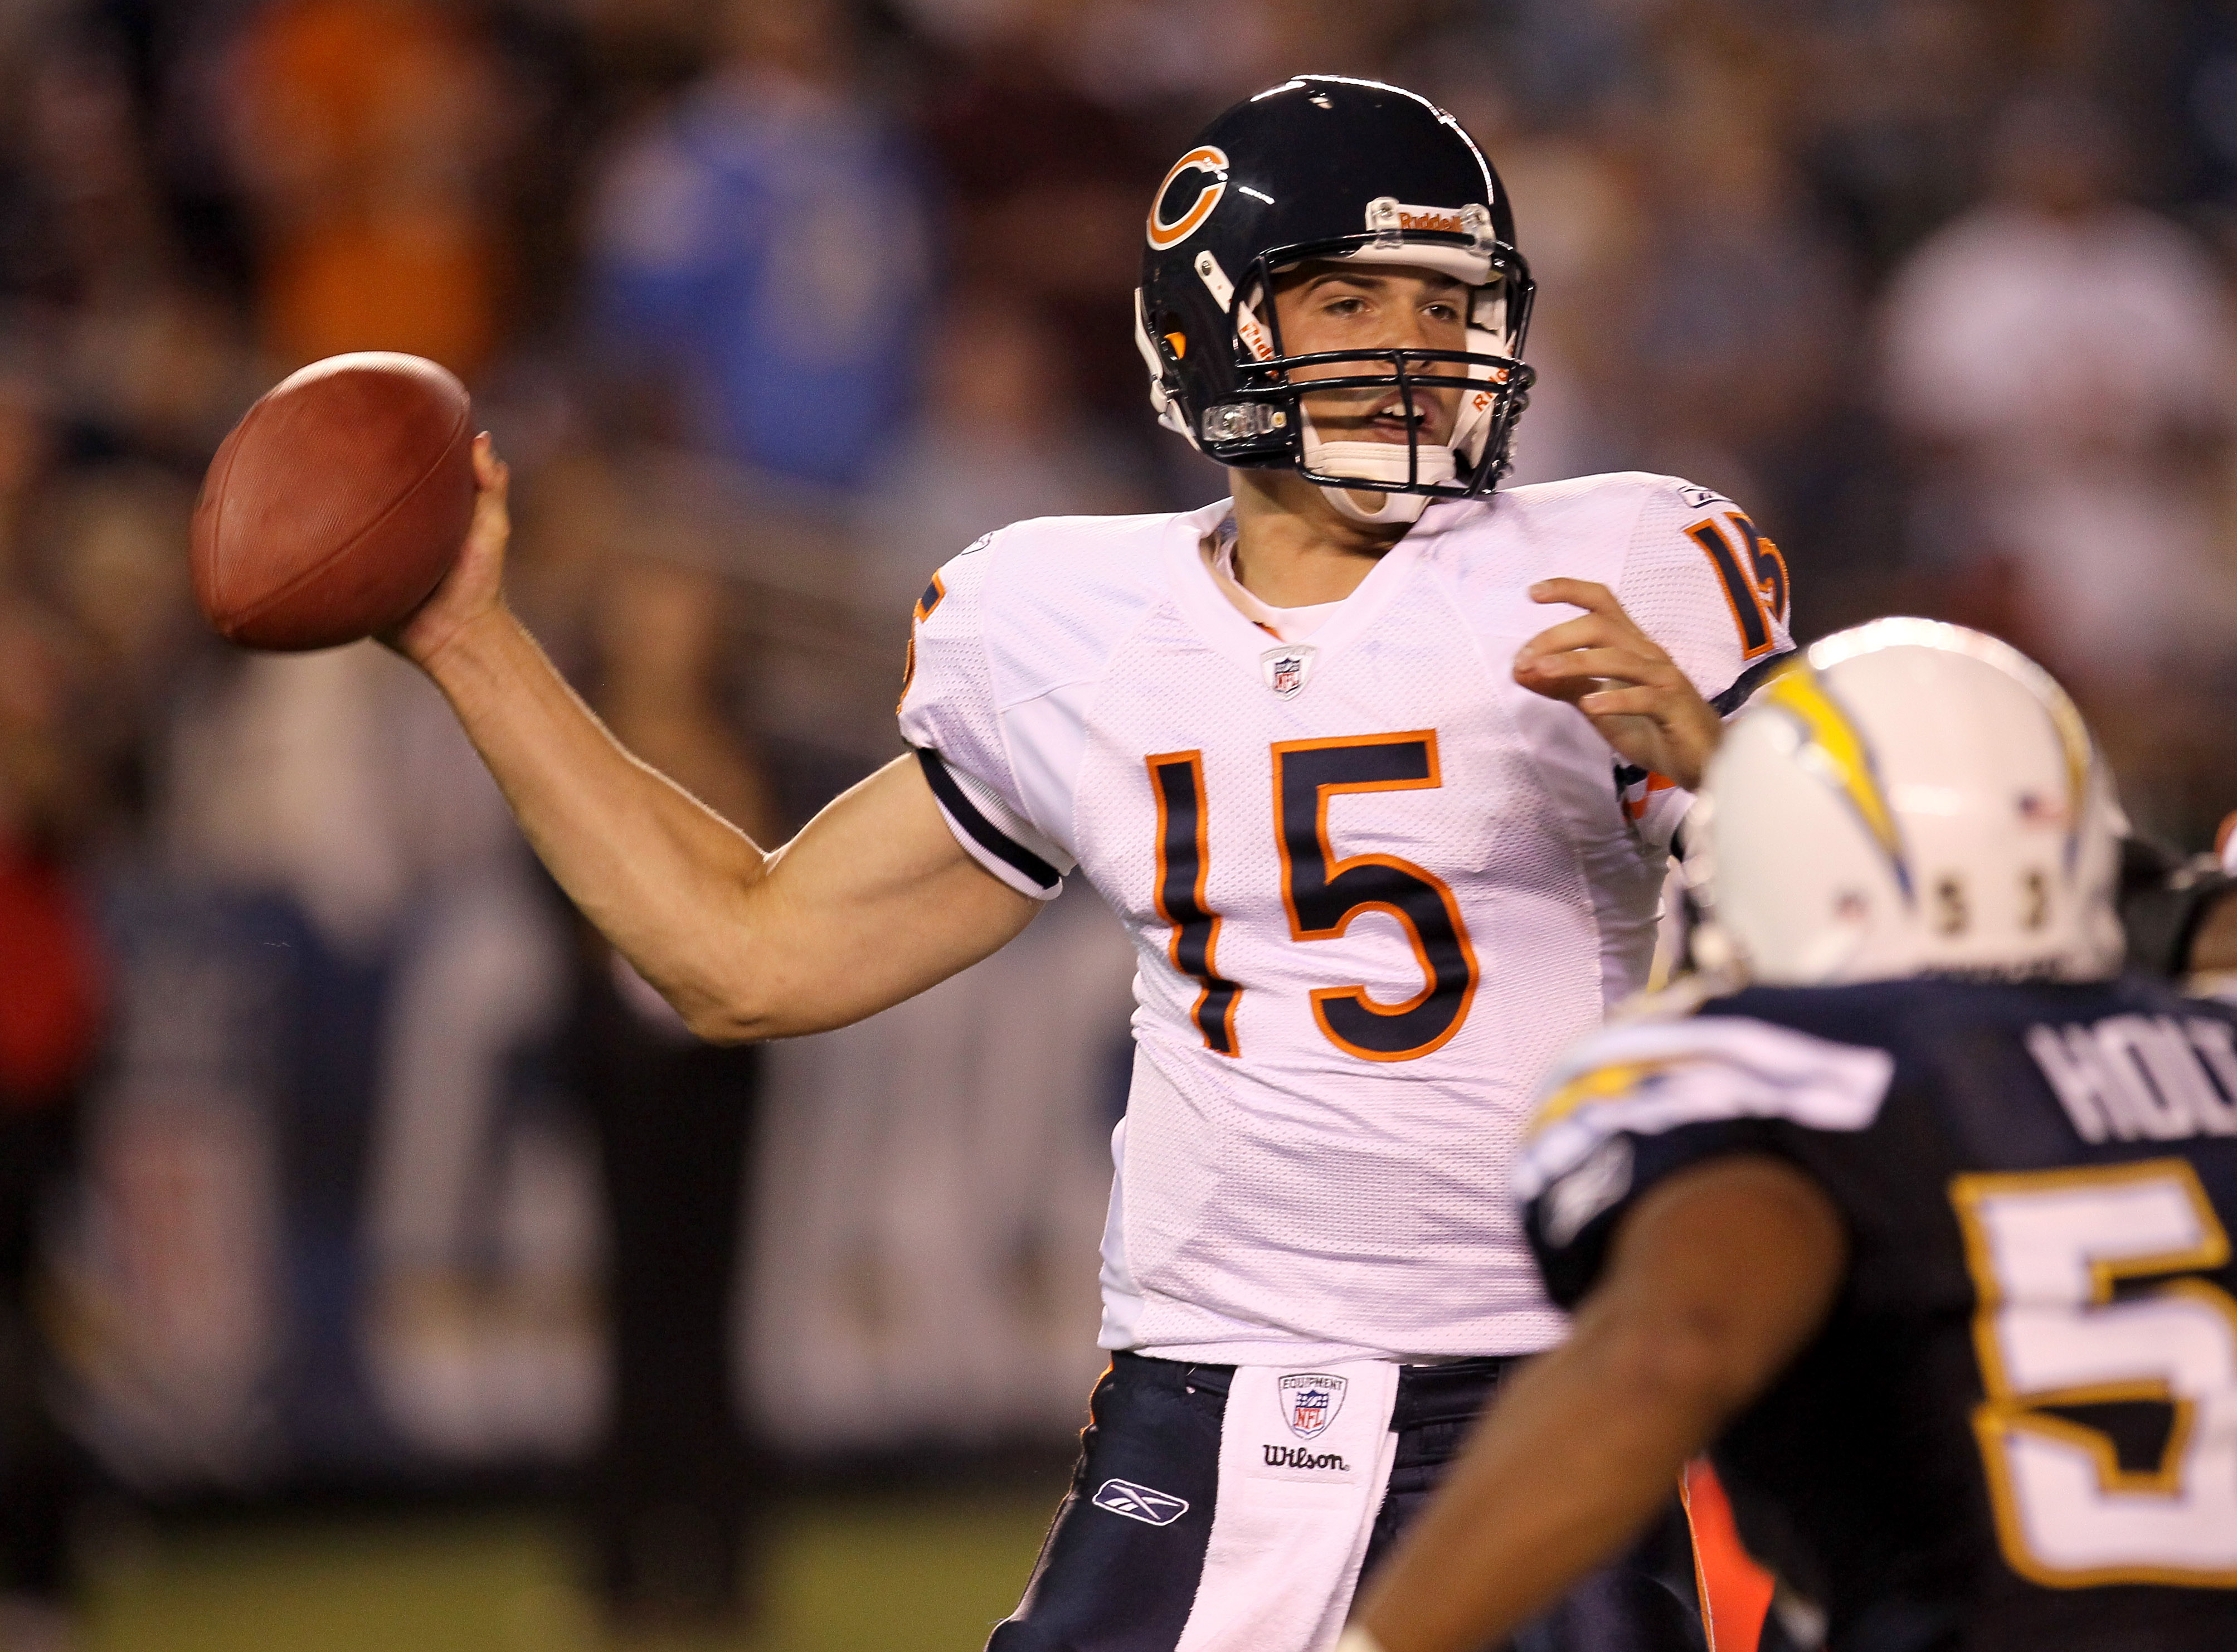 SAN DIEGO - AUGUST 14:  Quarterback Dan LeFevour  #15 of the Chicago Bears throws a pass against the San Diego Chargers on August 14, 2010 at Qualcomm Stadium in San Diego, California.   The Chargers won 25-10.  (Photo by Stephen Dunn/Getty Images)